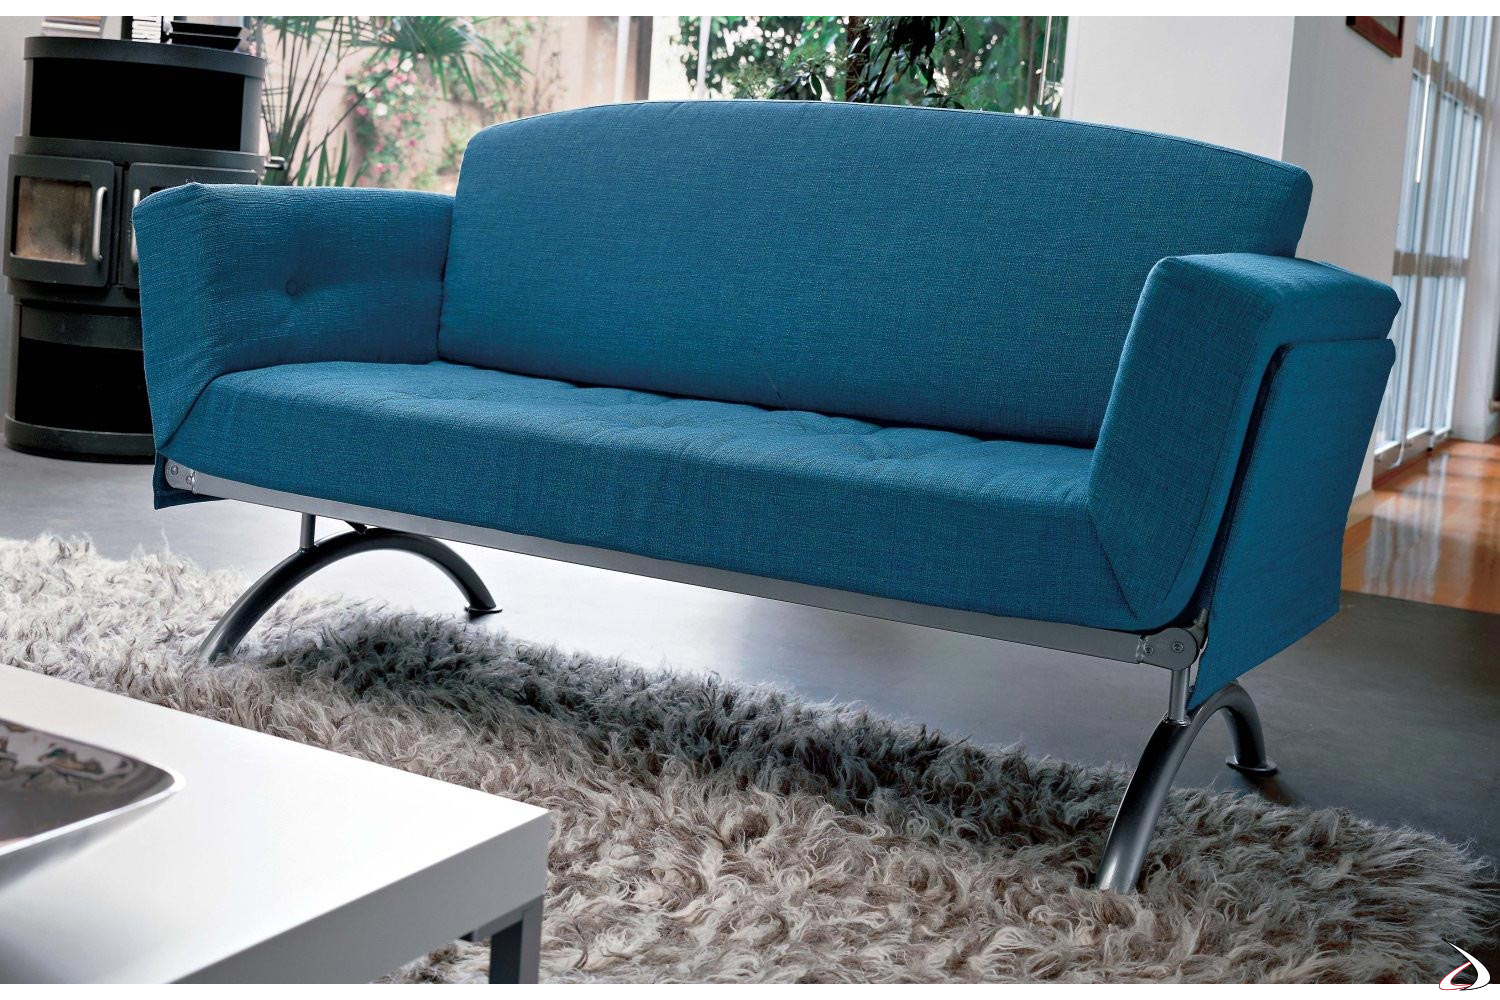 Gaucio sofa bed